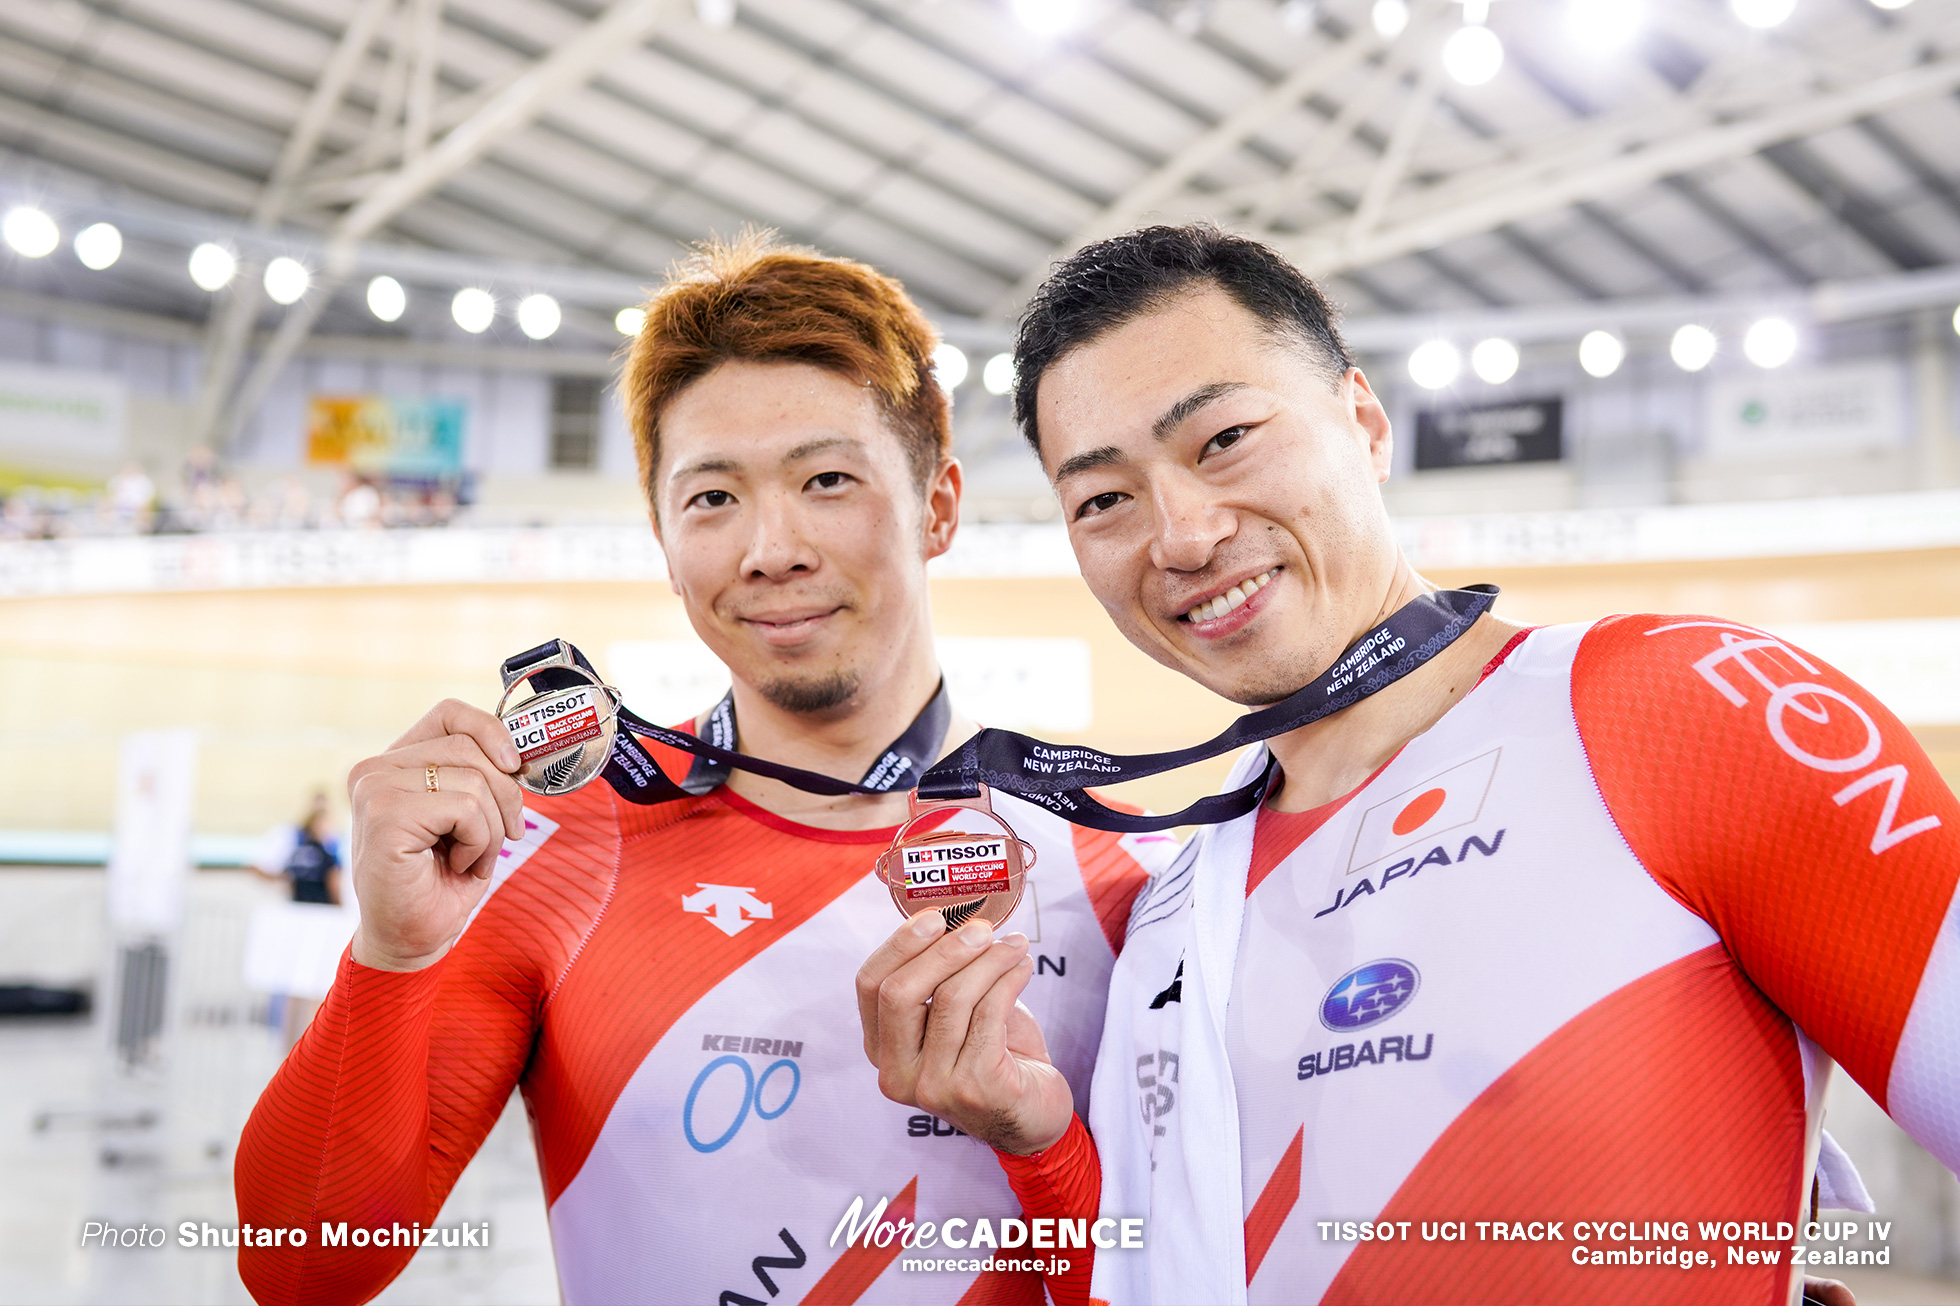 Final / Men's Sprint / TISSOT UCI TRACK CYCLING WORLD CUP IV, Cambridge, New Zealand, 深谷知広 新田祐大